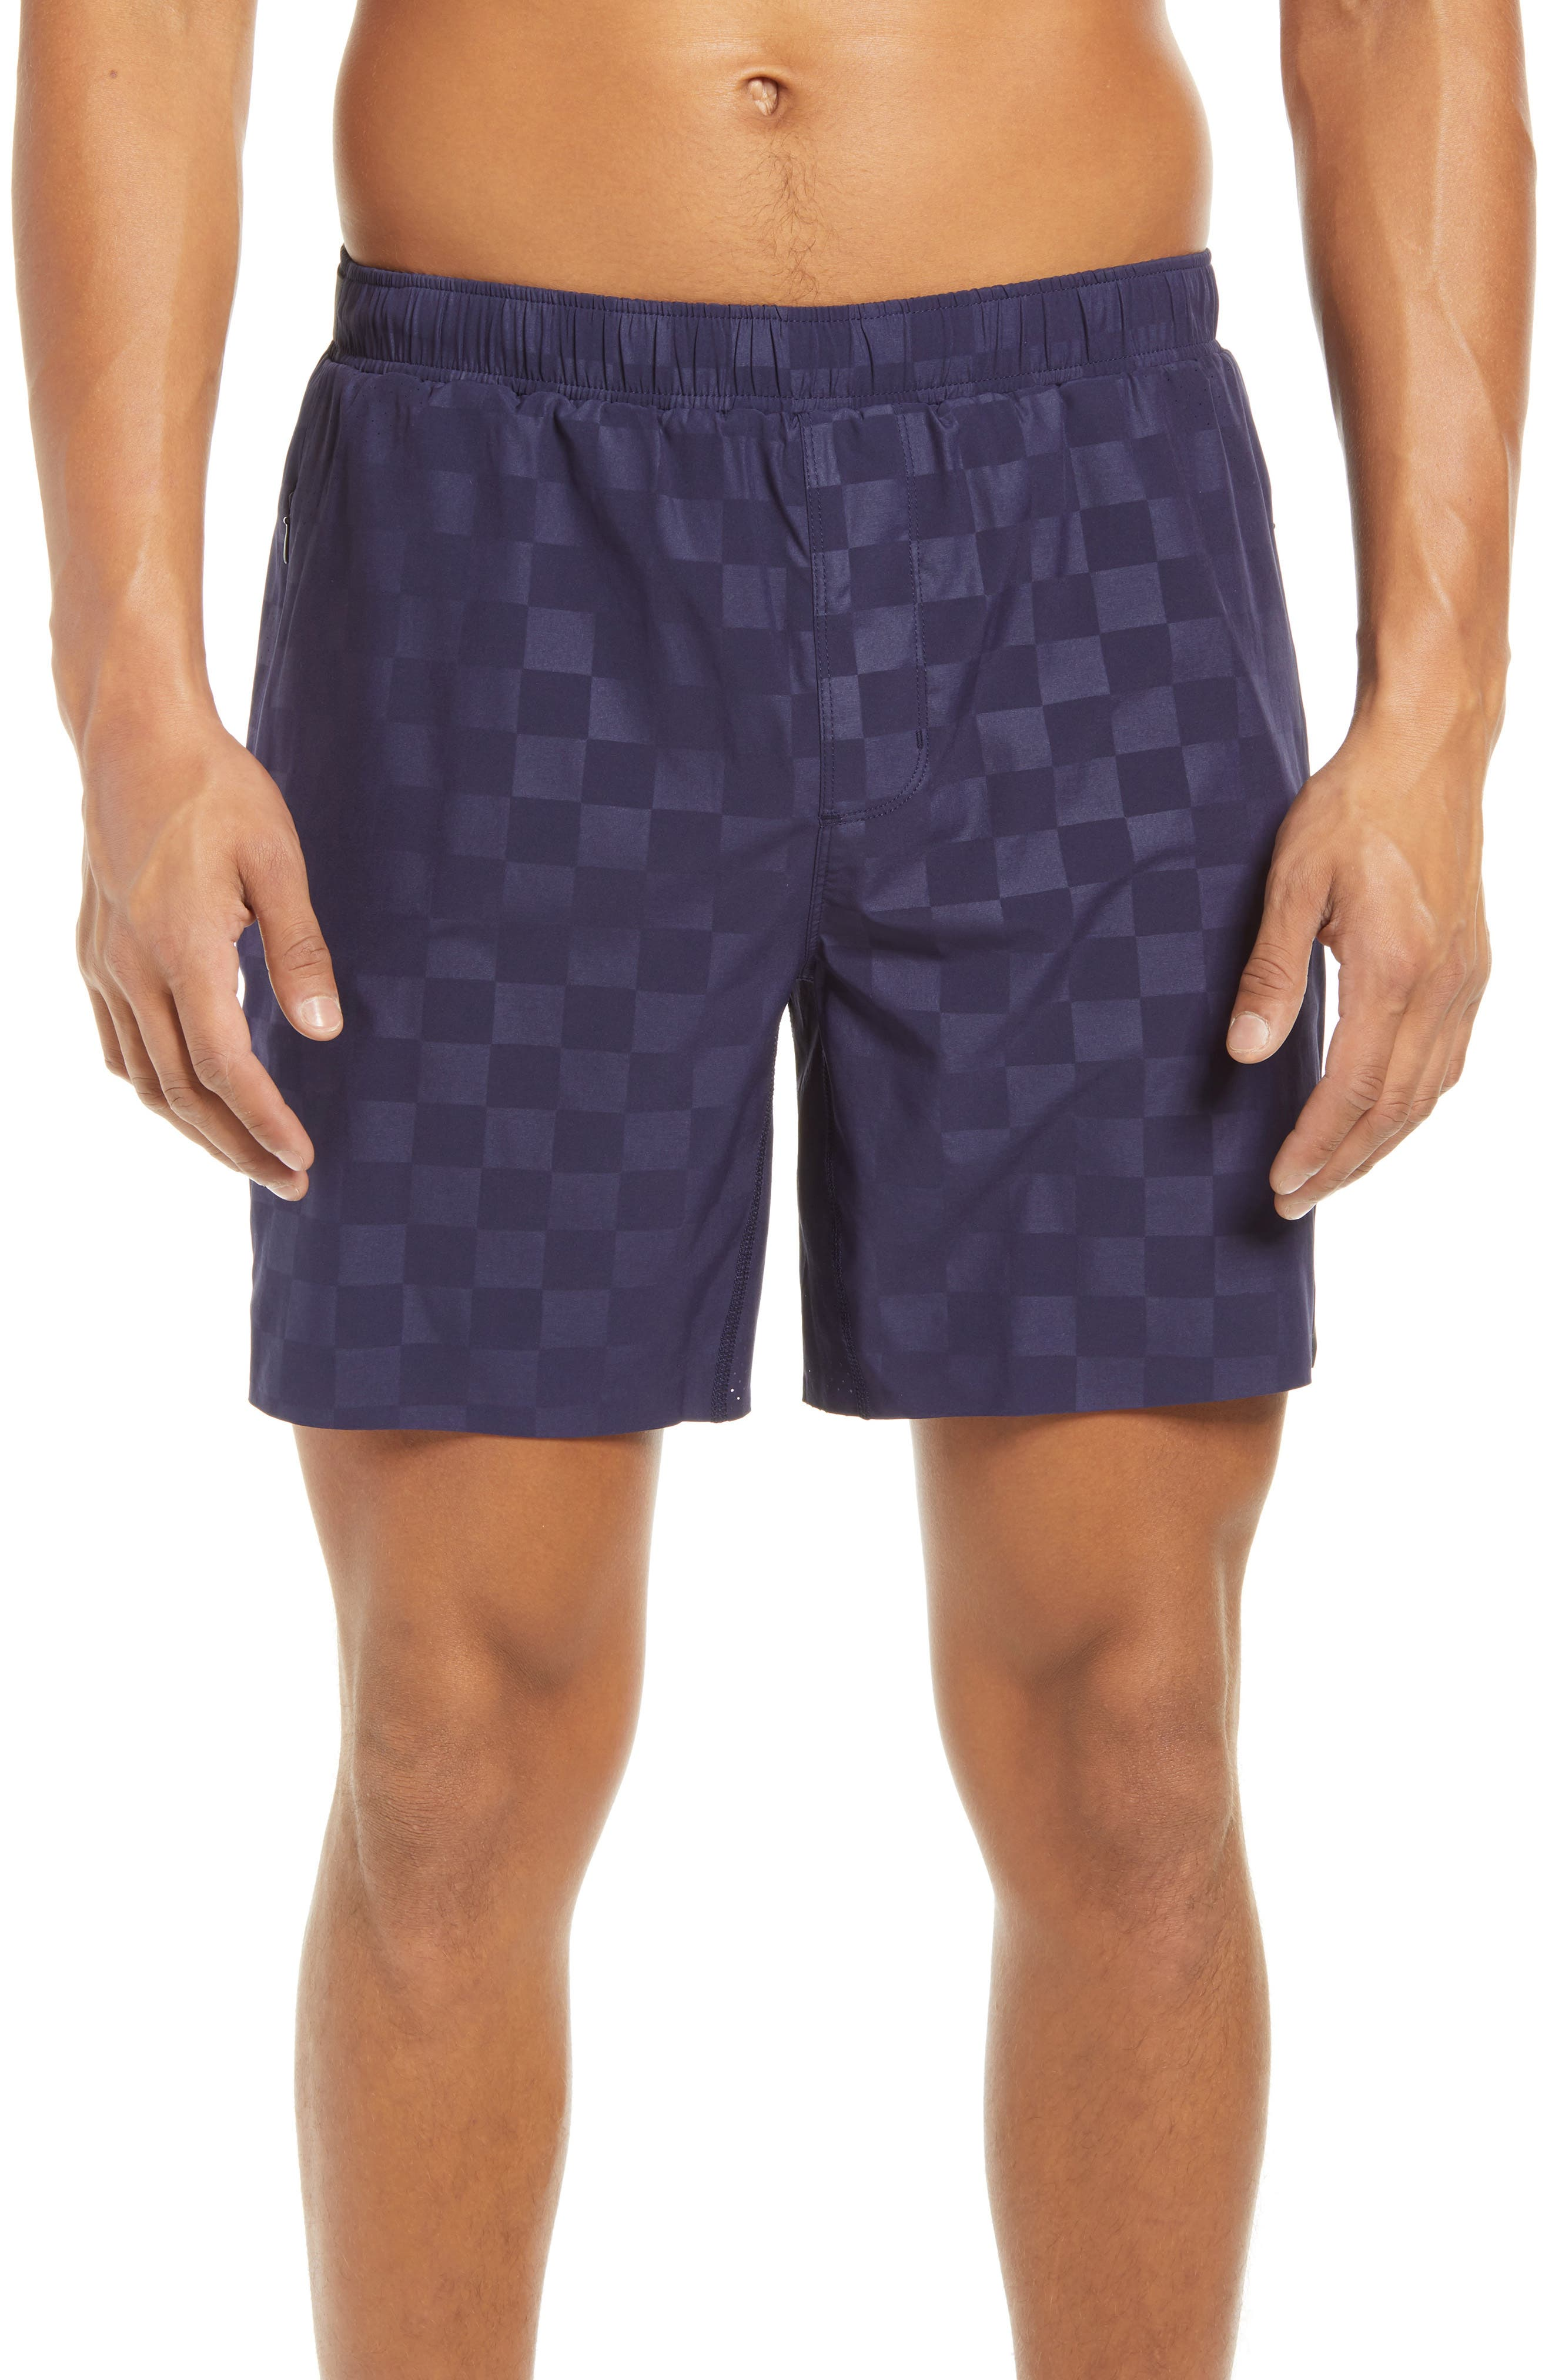 Four-way-stretch fabric keeps you moving on the field and off in drawstring soccer shorts sporting mesh insets and a supportive interior brief. A pair of zippered pockets keeps your essentials securely stowed while you\\\'re working out or kicking goals. Style Name: Rhone Swift Academy Soccer Shorts. Style Number: 6106147. Available in stores.